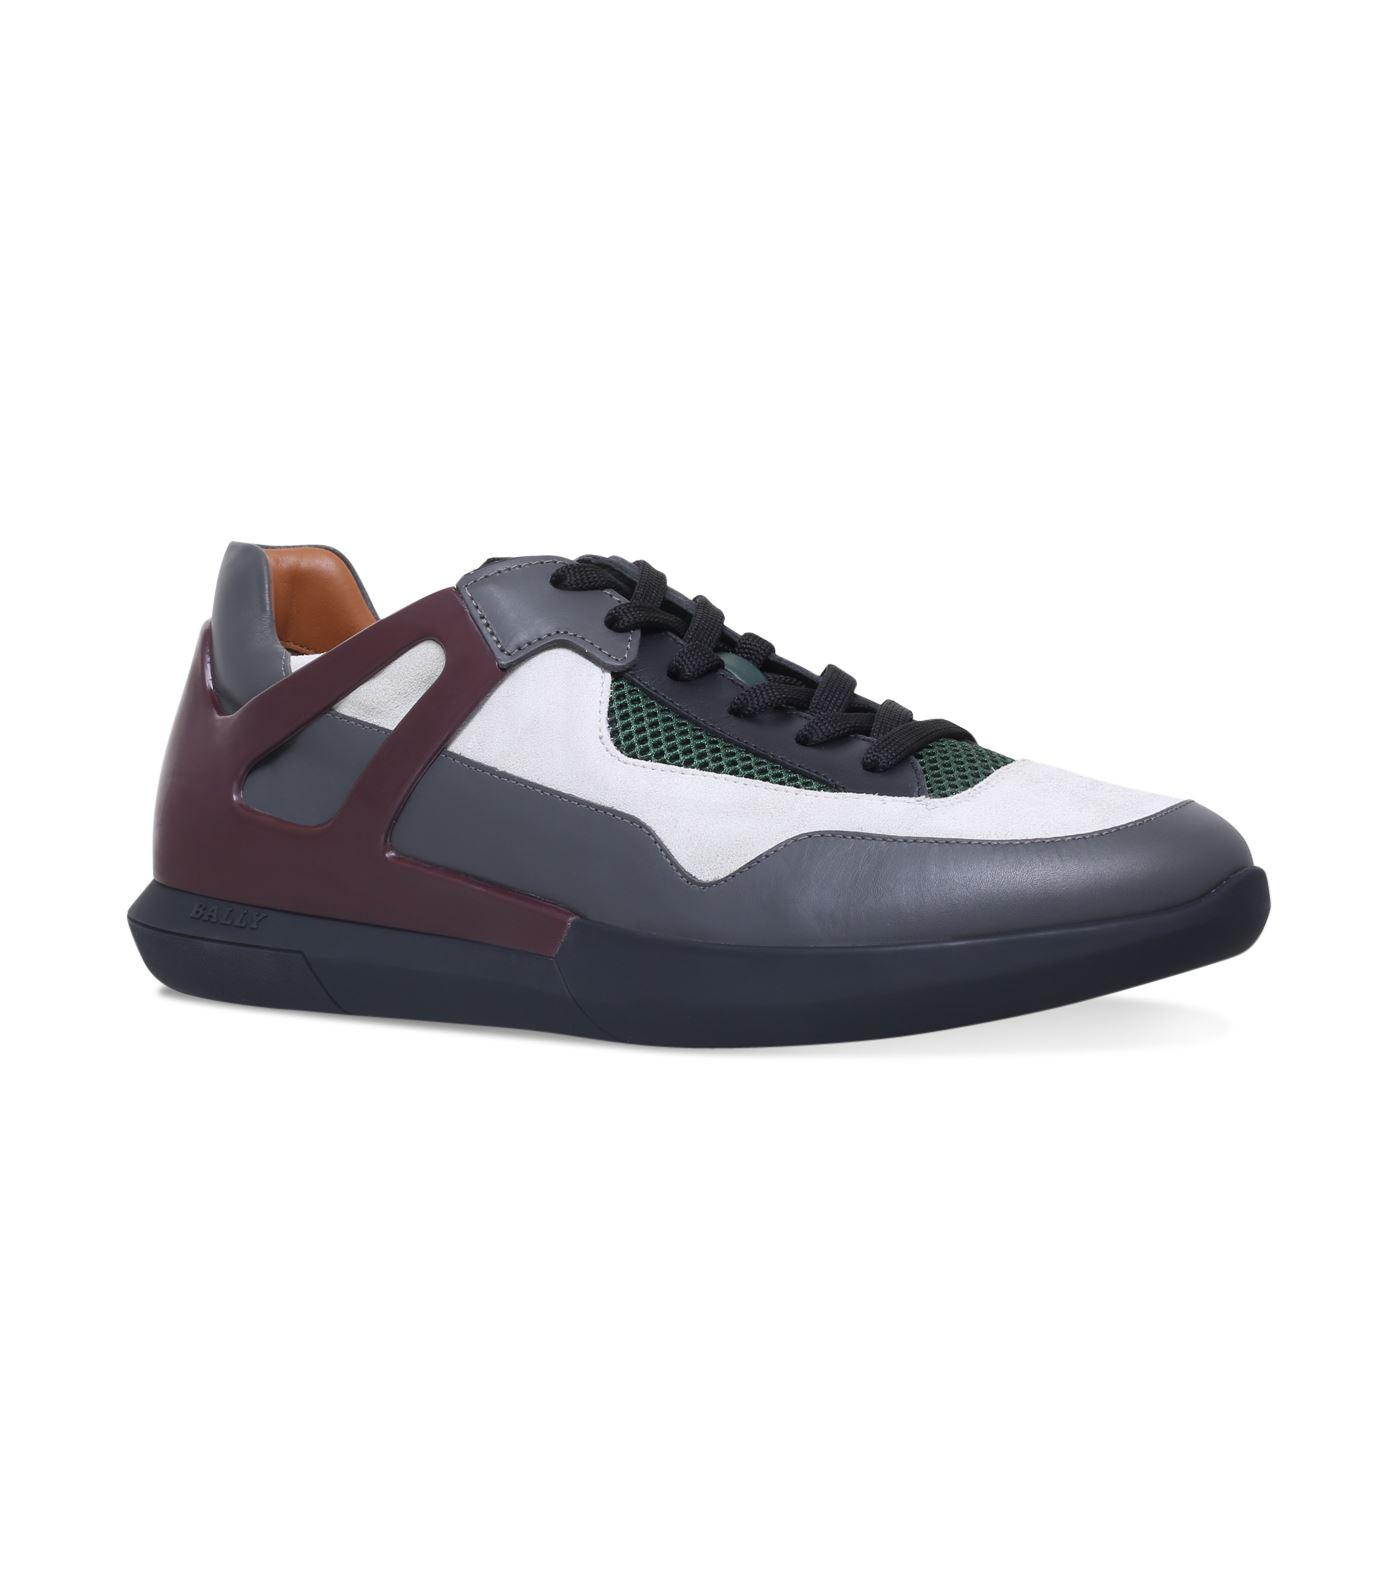 Bally Avion Leather Sneakers In Grey